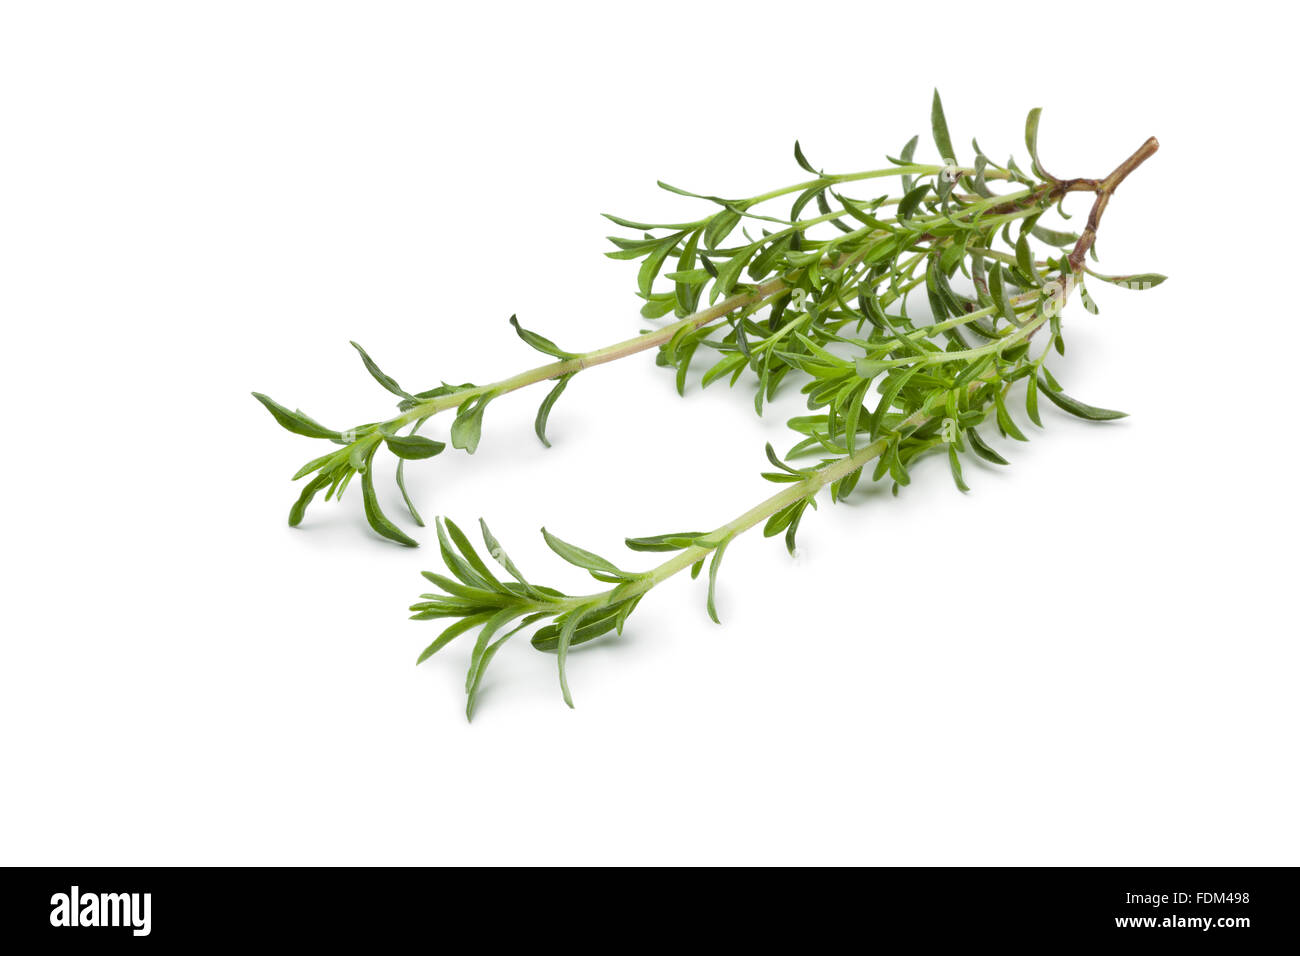 Fresh twig of Winter savory on white background - Stock Image